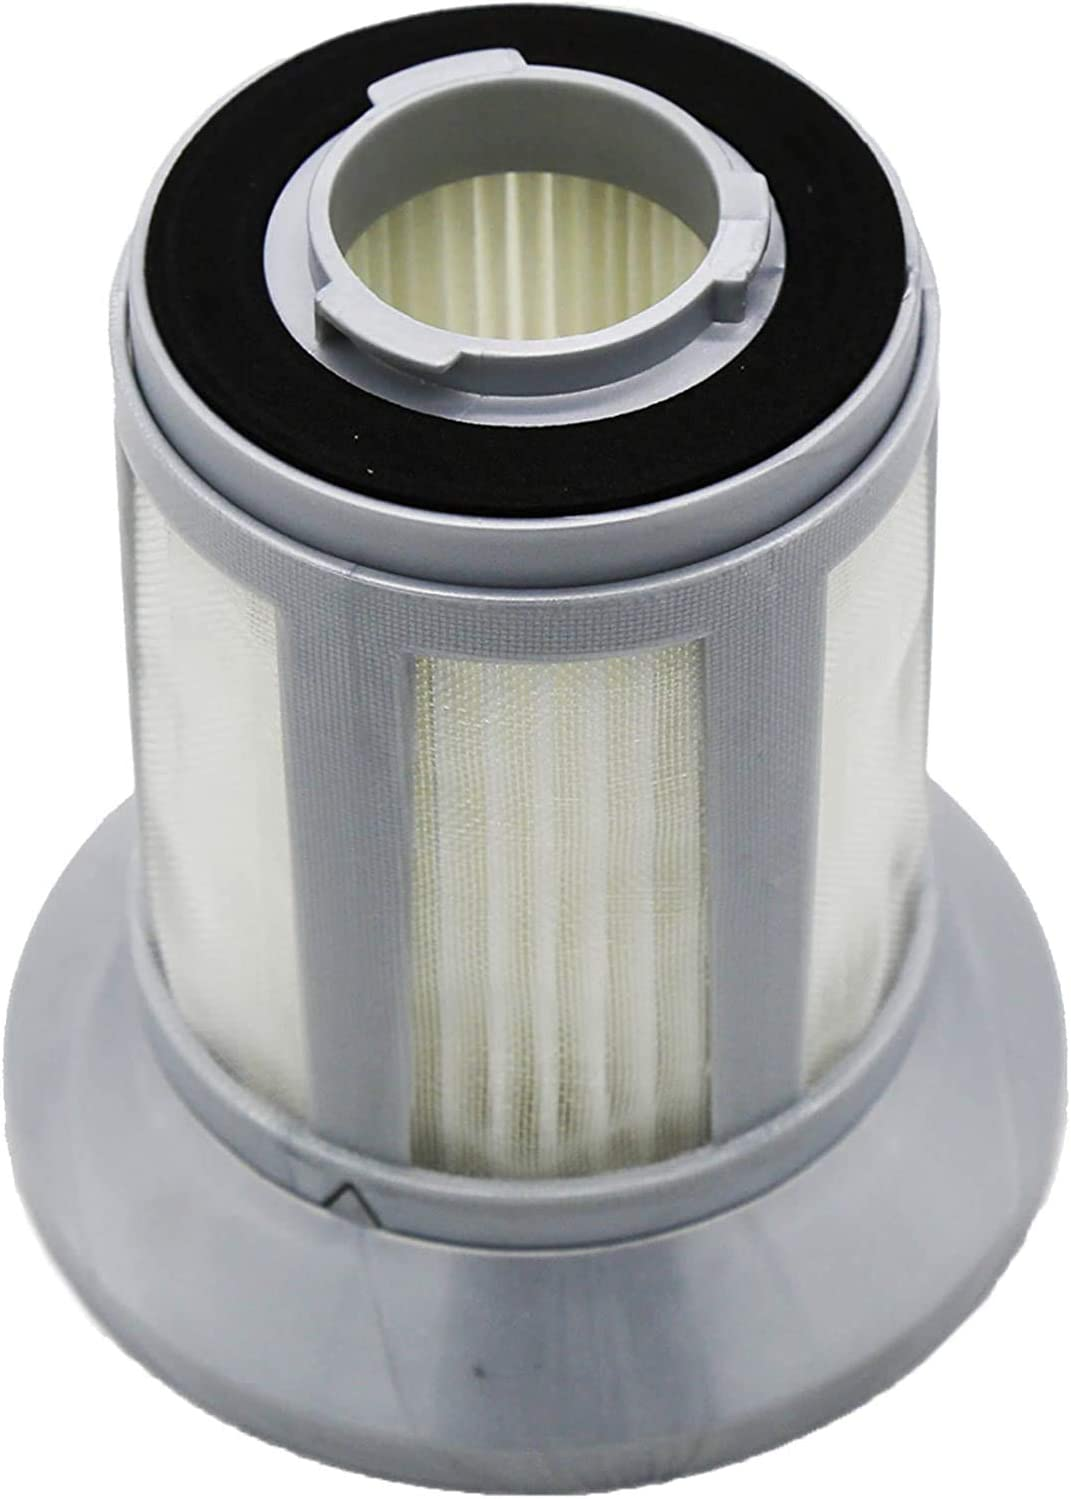 Green Label Replacement Filter 1613056 for Bissell 2156A Zing Bagless Canister Vacuum Cleaners